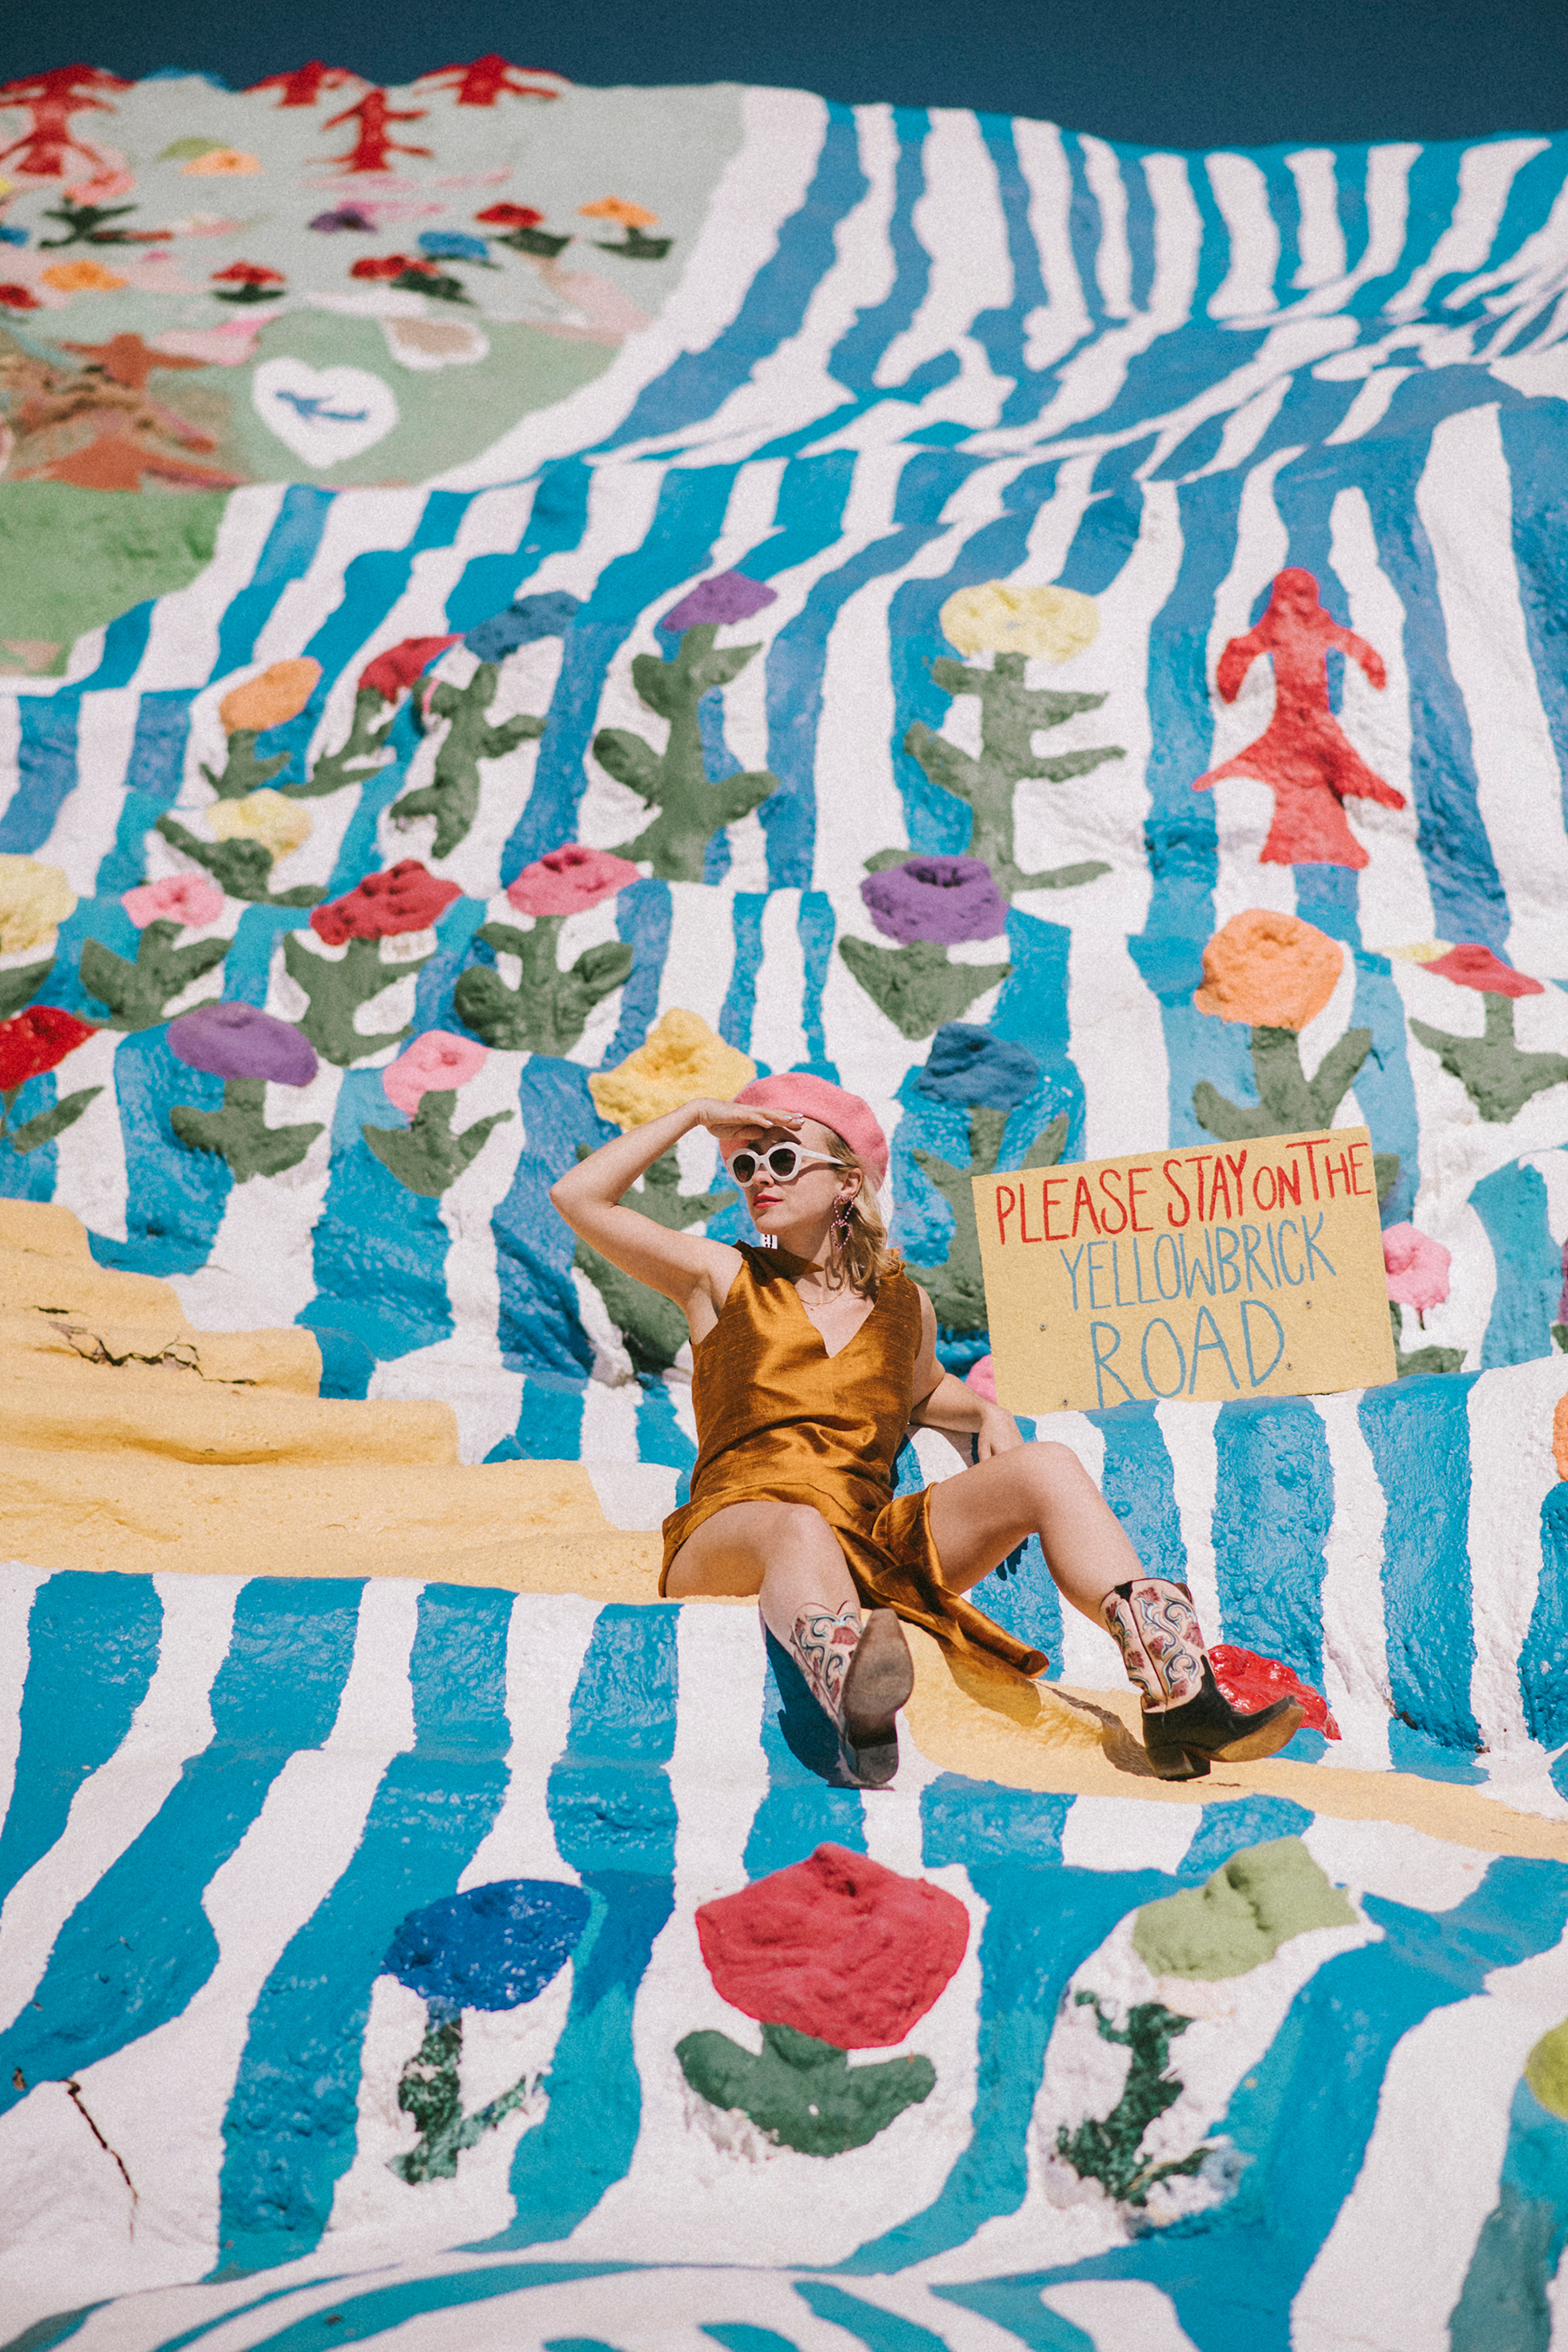 2 russian_red_viaje_valle_coachella_palm_springs_salvation_mountain_hoteles_turismo_playas_467637060_1800x2700.jpg